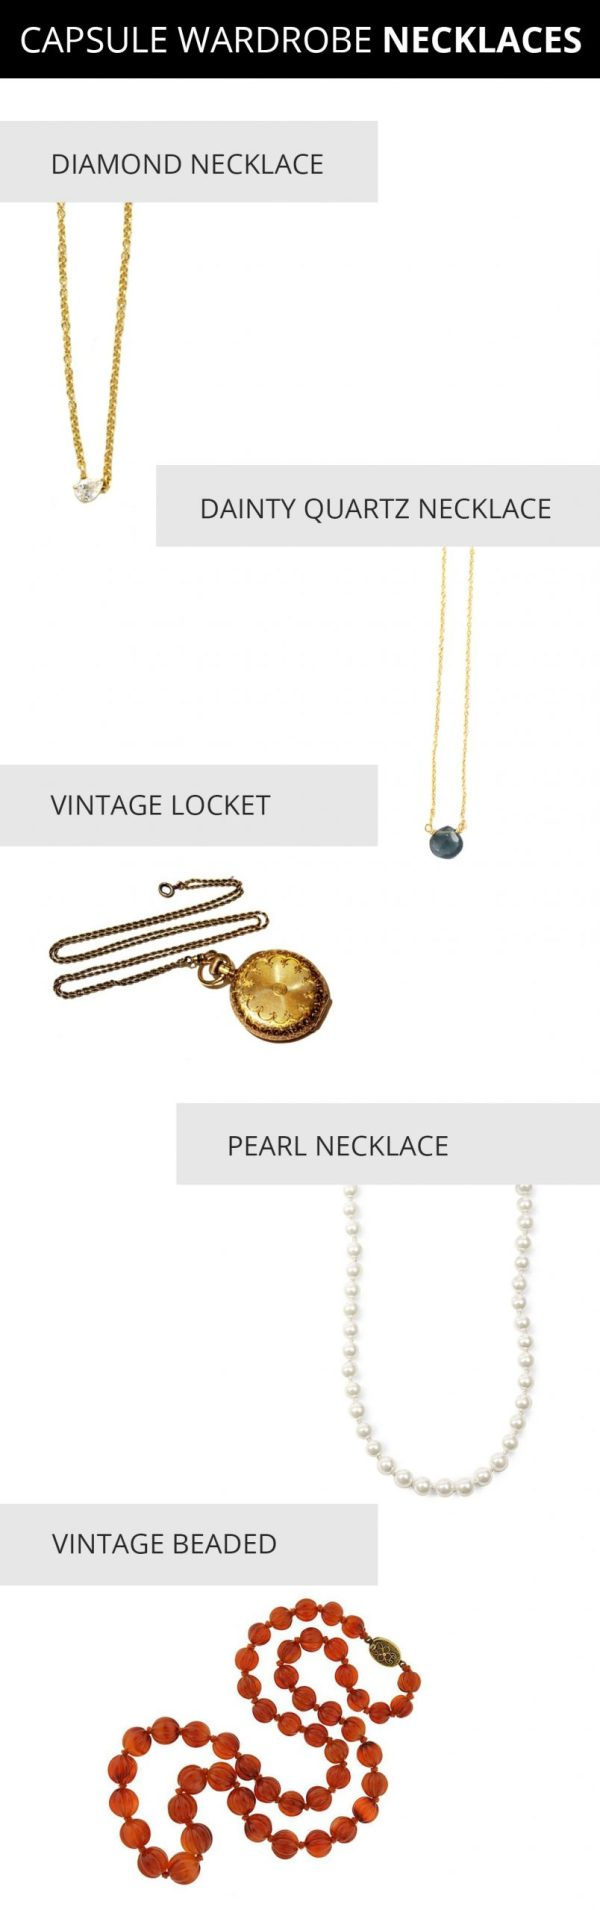 capsule jewelry wardrobe - capsule wardrobe necklaces